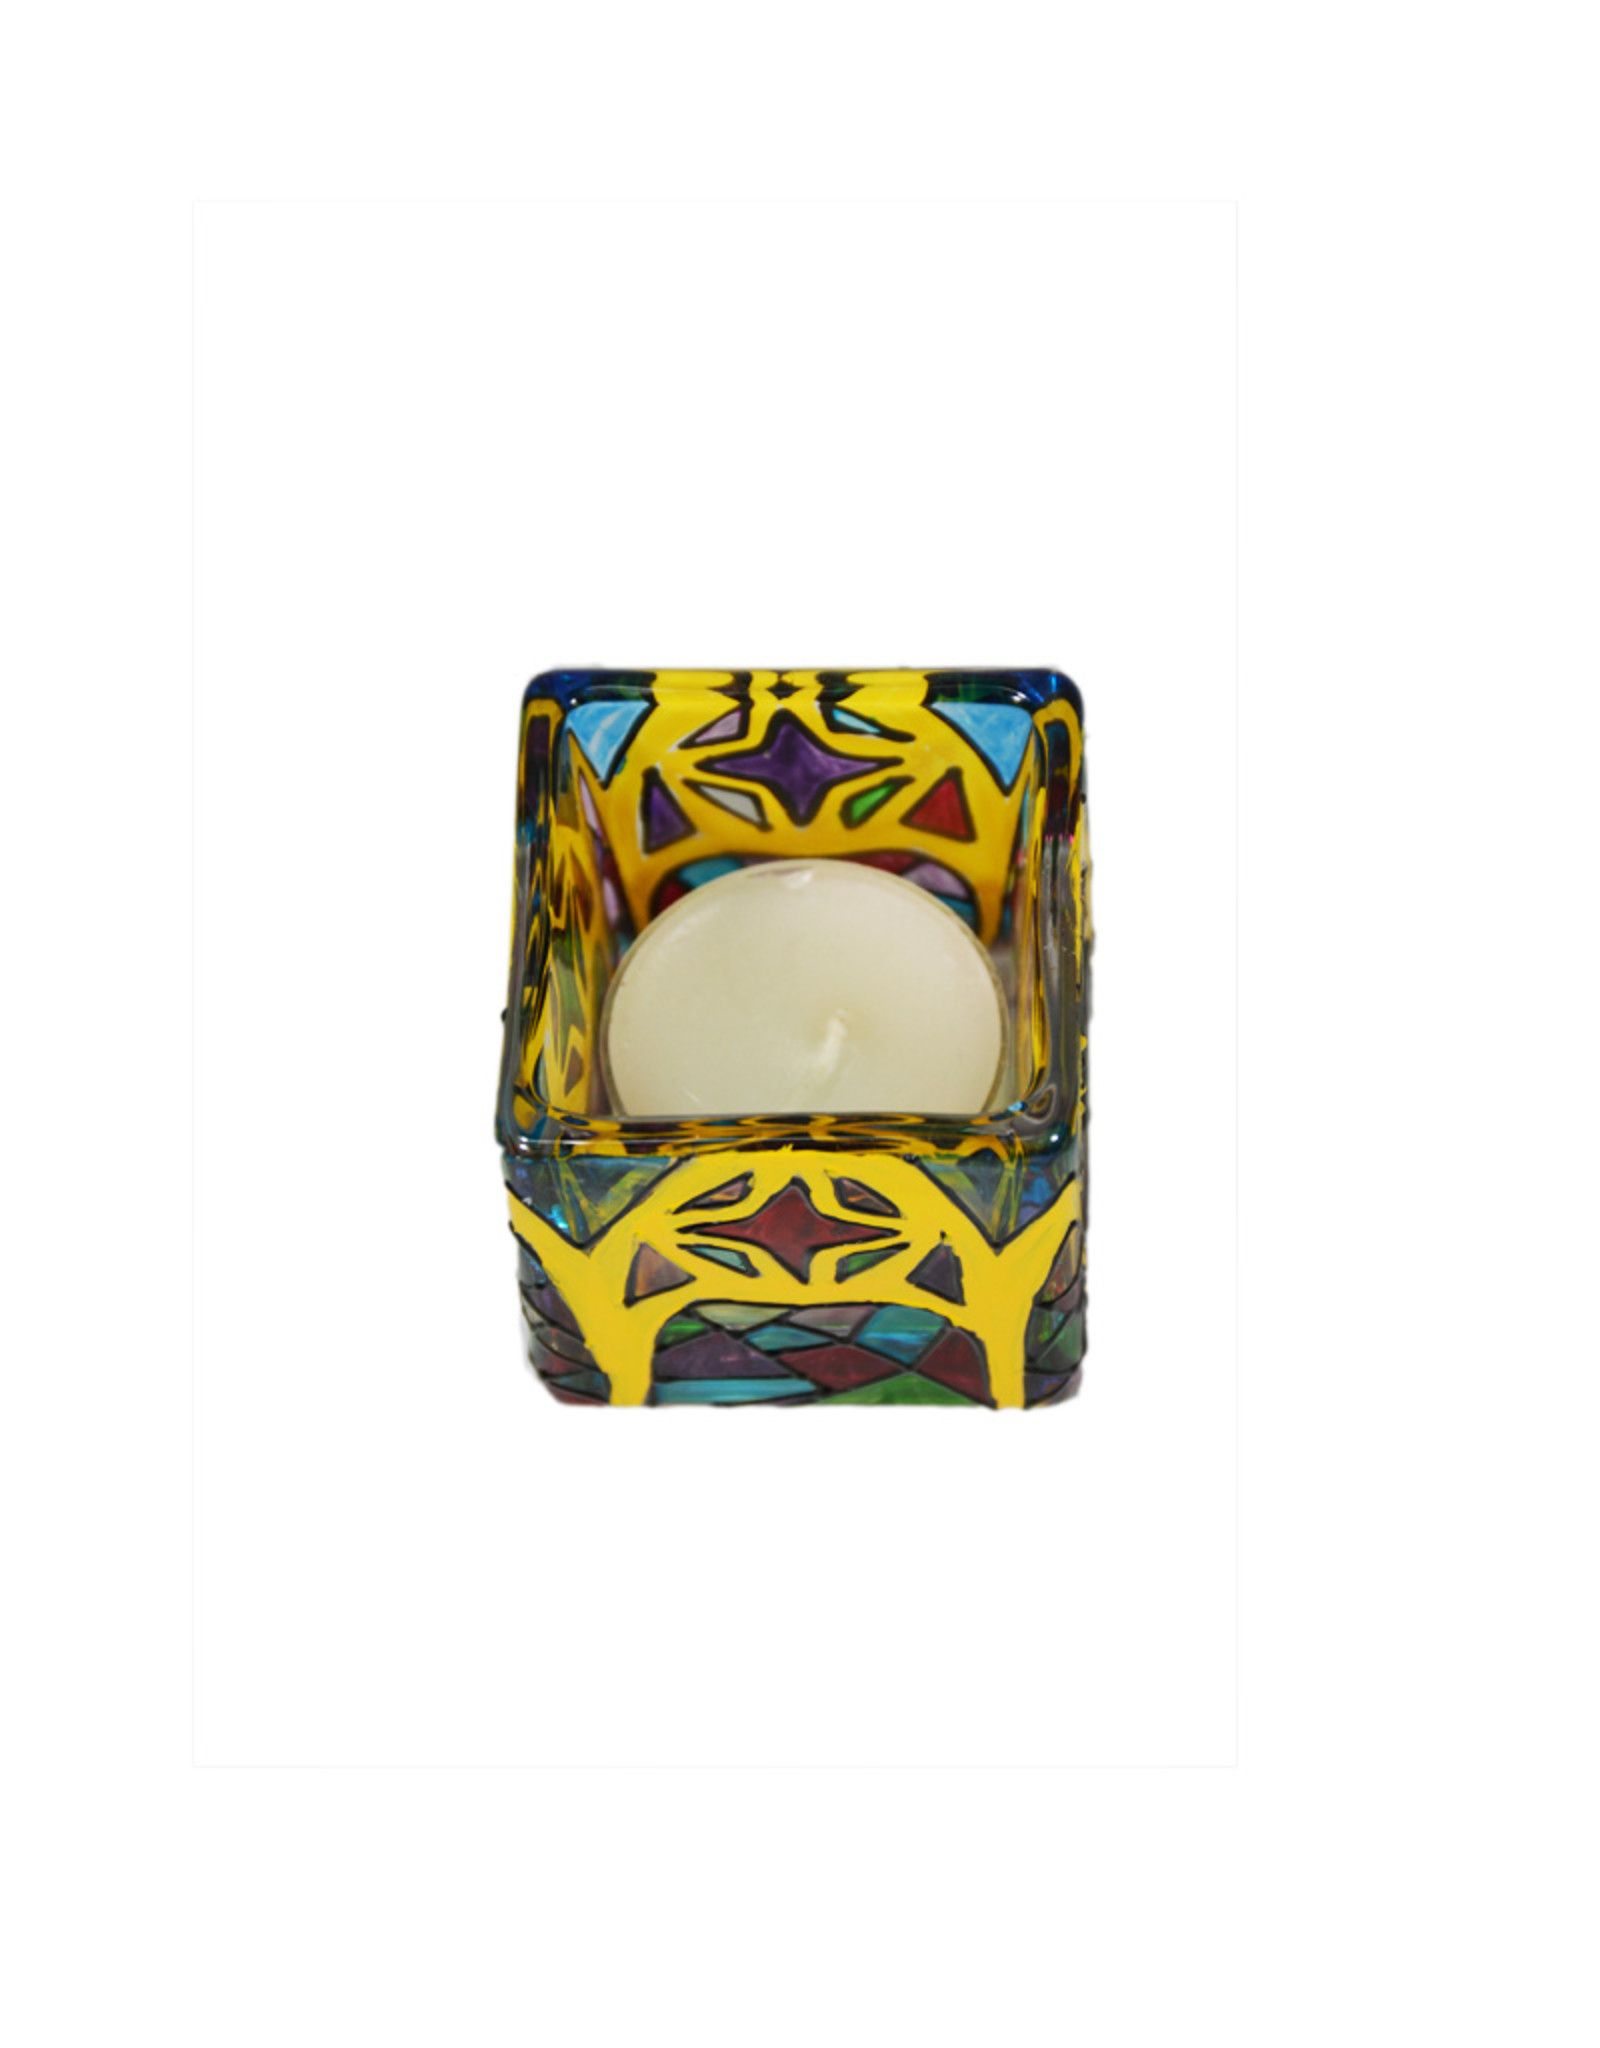 Stained glass votive candle holder-small